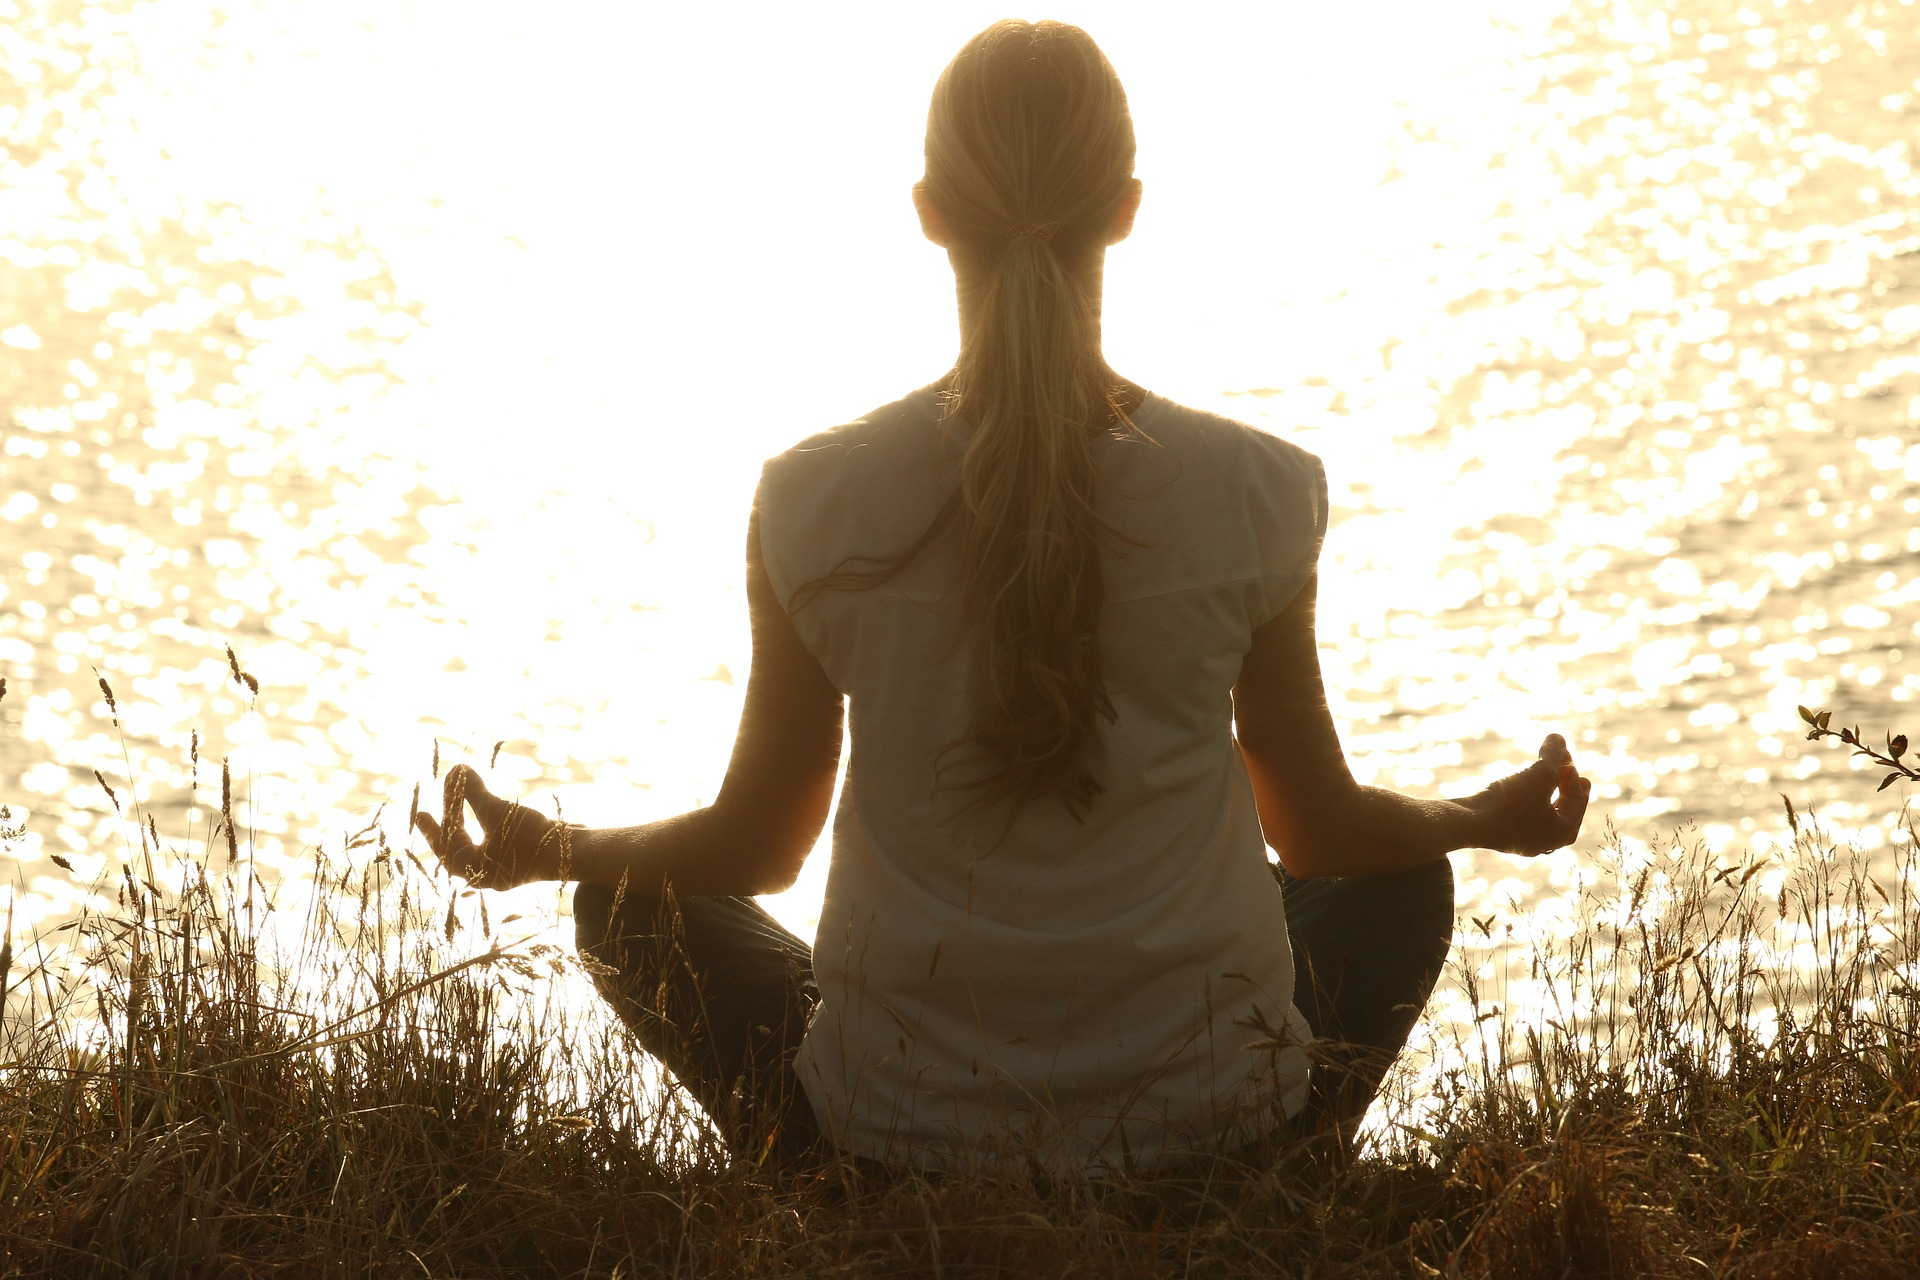 How Does Yoga Relieve Stress and Tension?